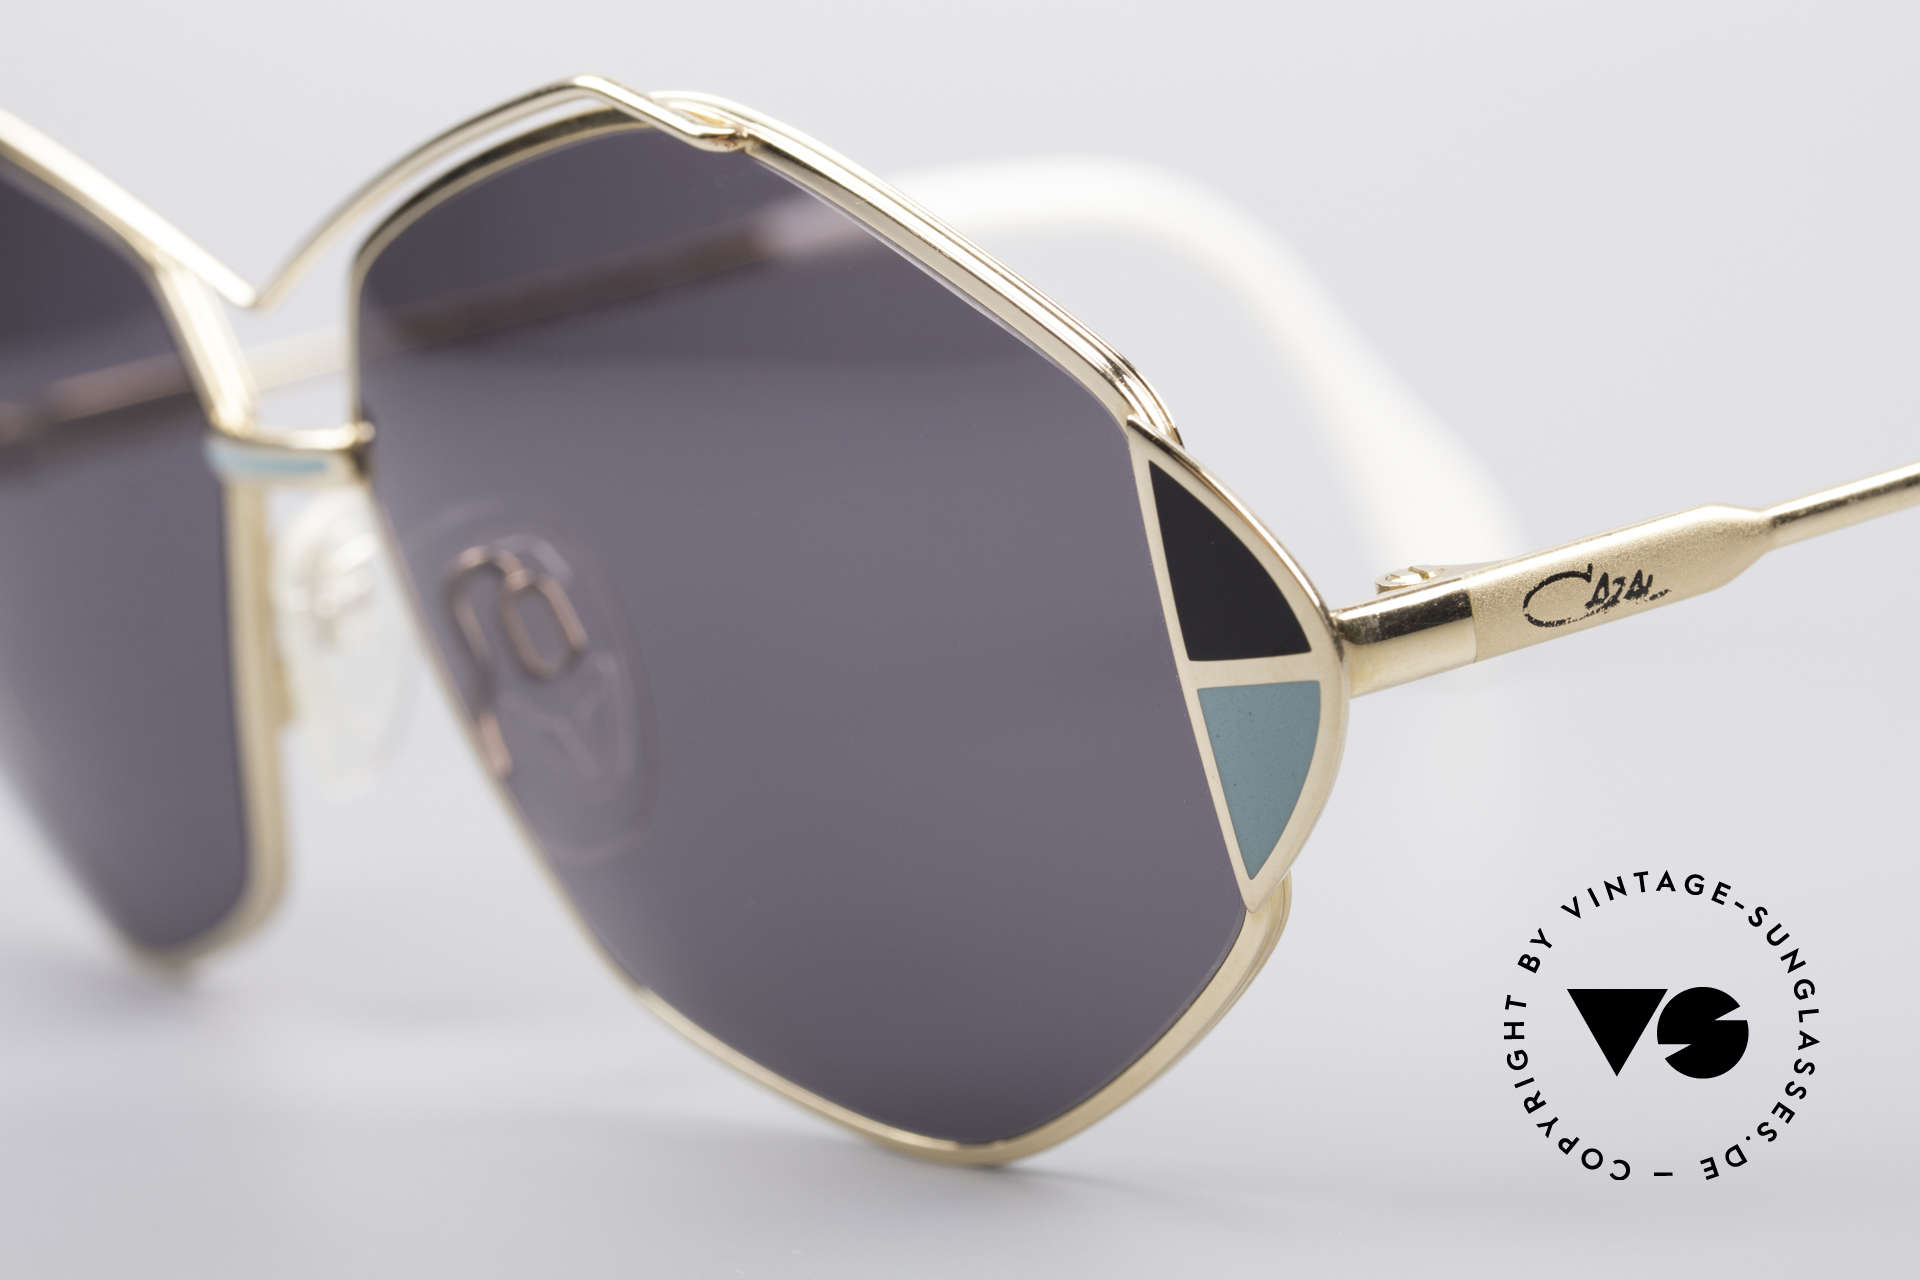 Cazal 233 Vintage West Germany Shades, new old stock (like all our vintage Cazal shades), Made for Women